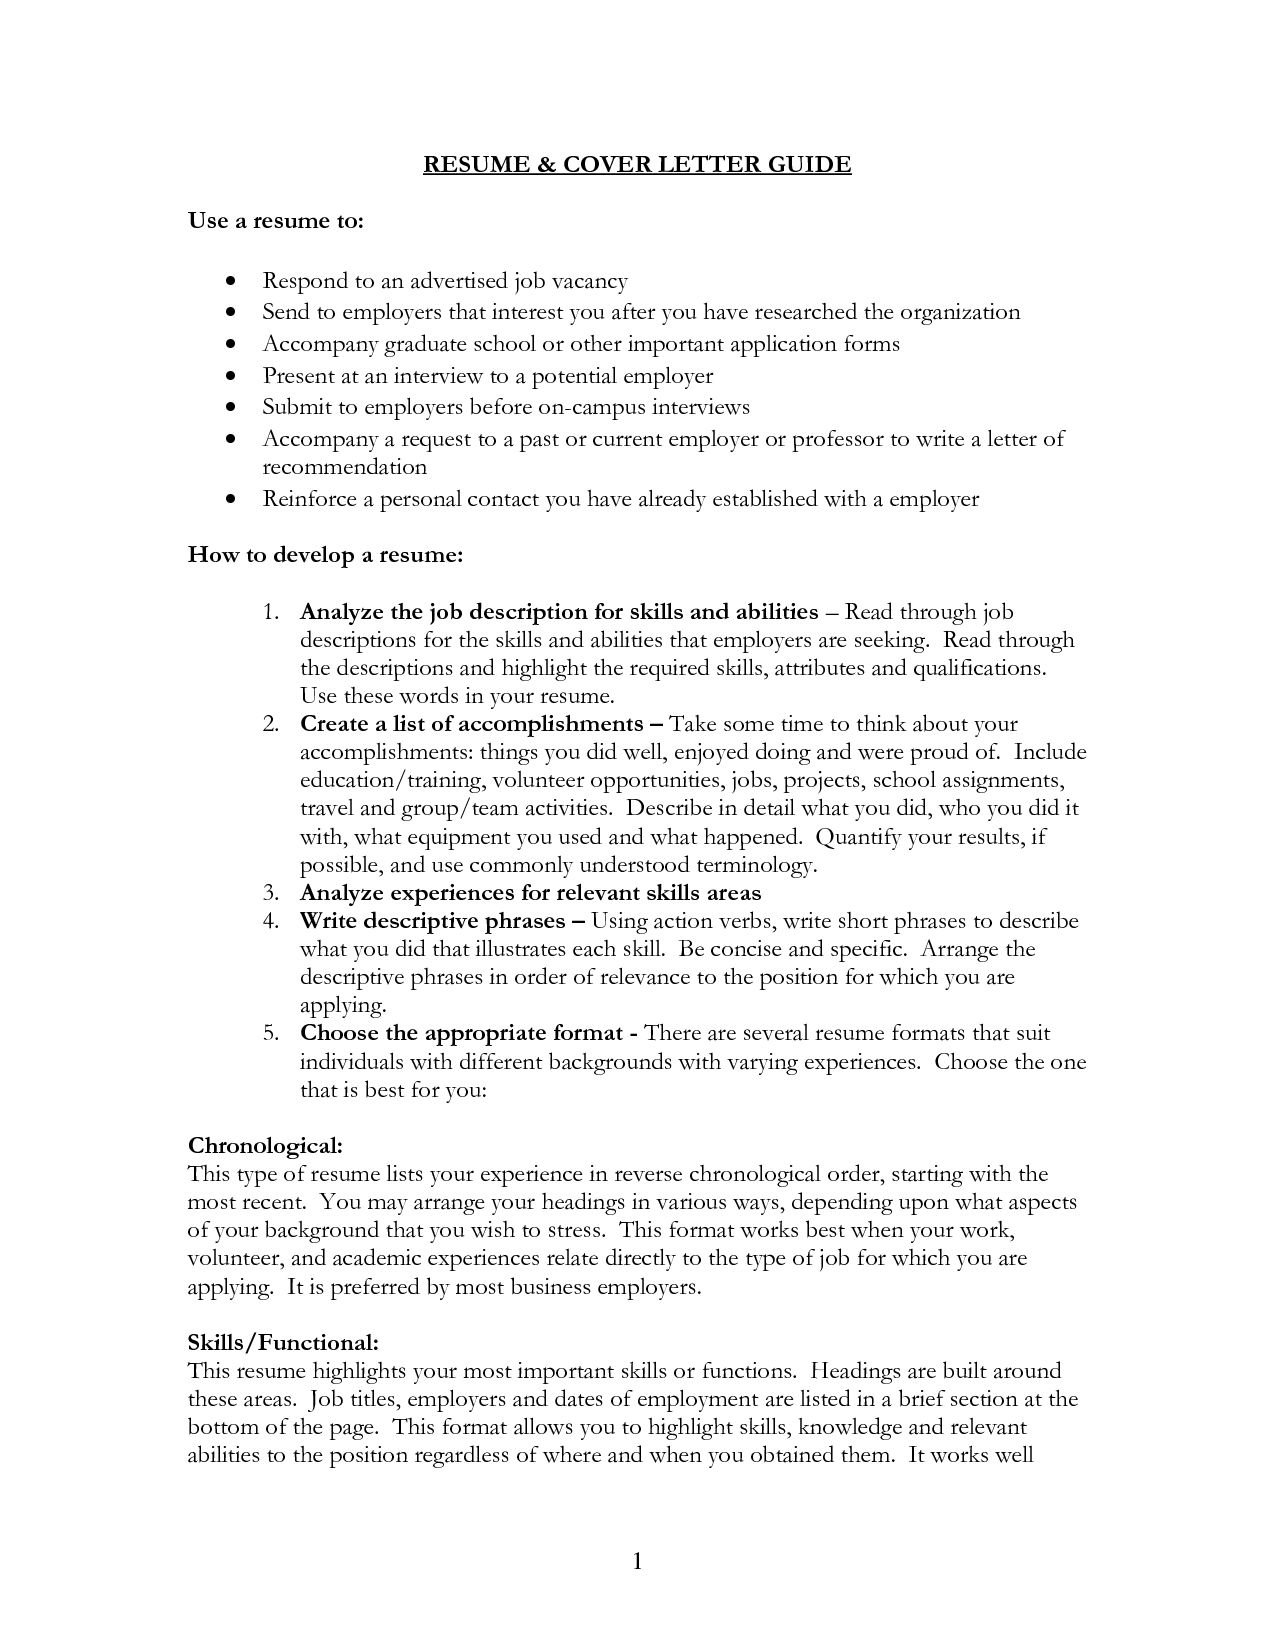 Anti Piracy Security Officer Cover Letter 23 Writing A Cover Letter For A Job Writing A Cover Letter For